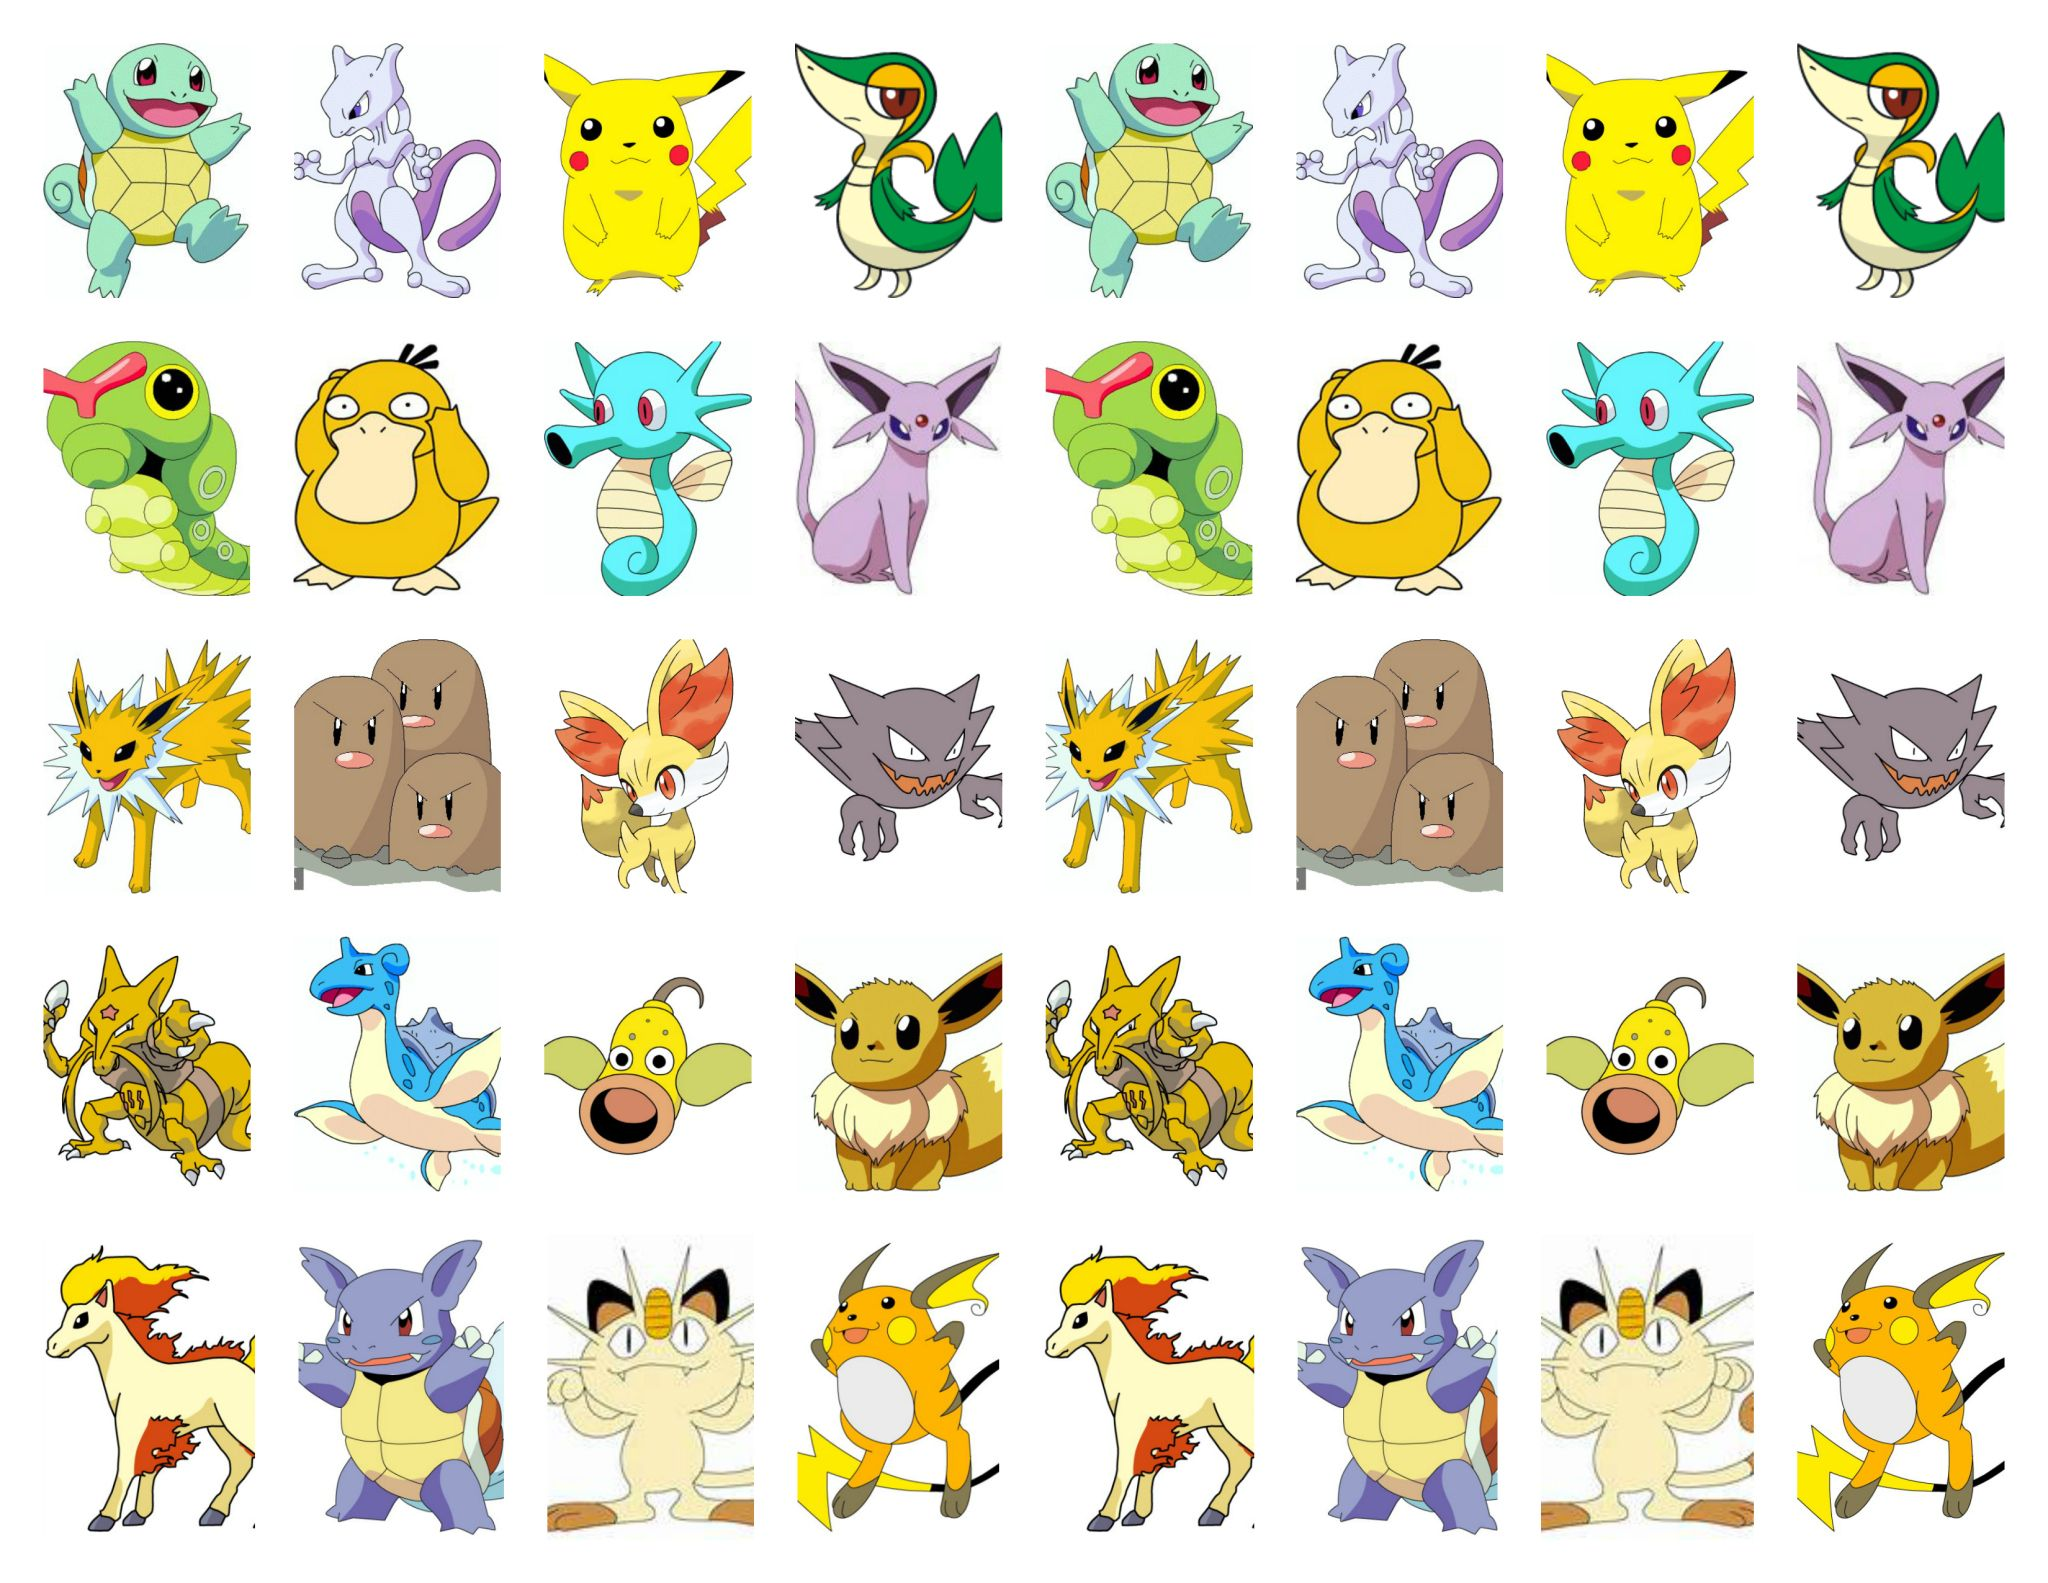 It's just a picture of Printable Pokedex with 1st gen